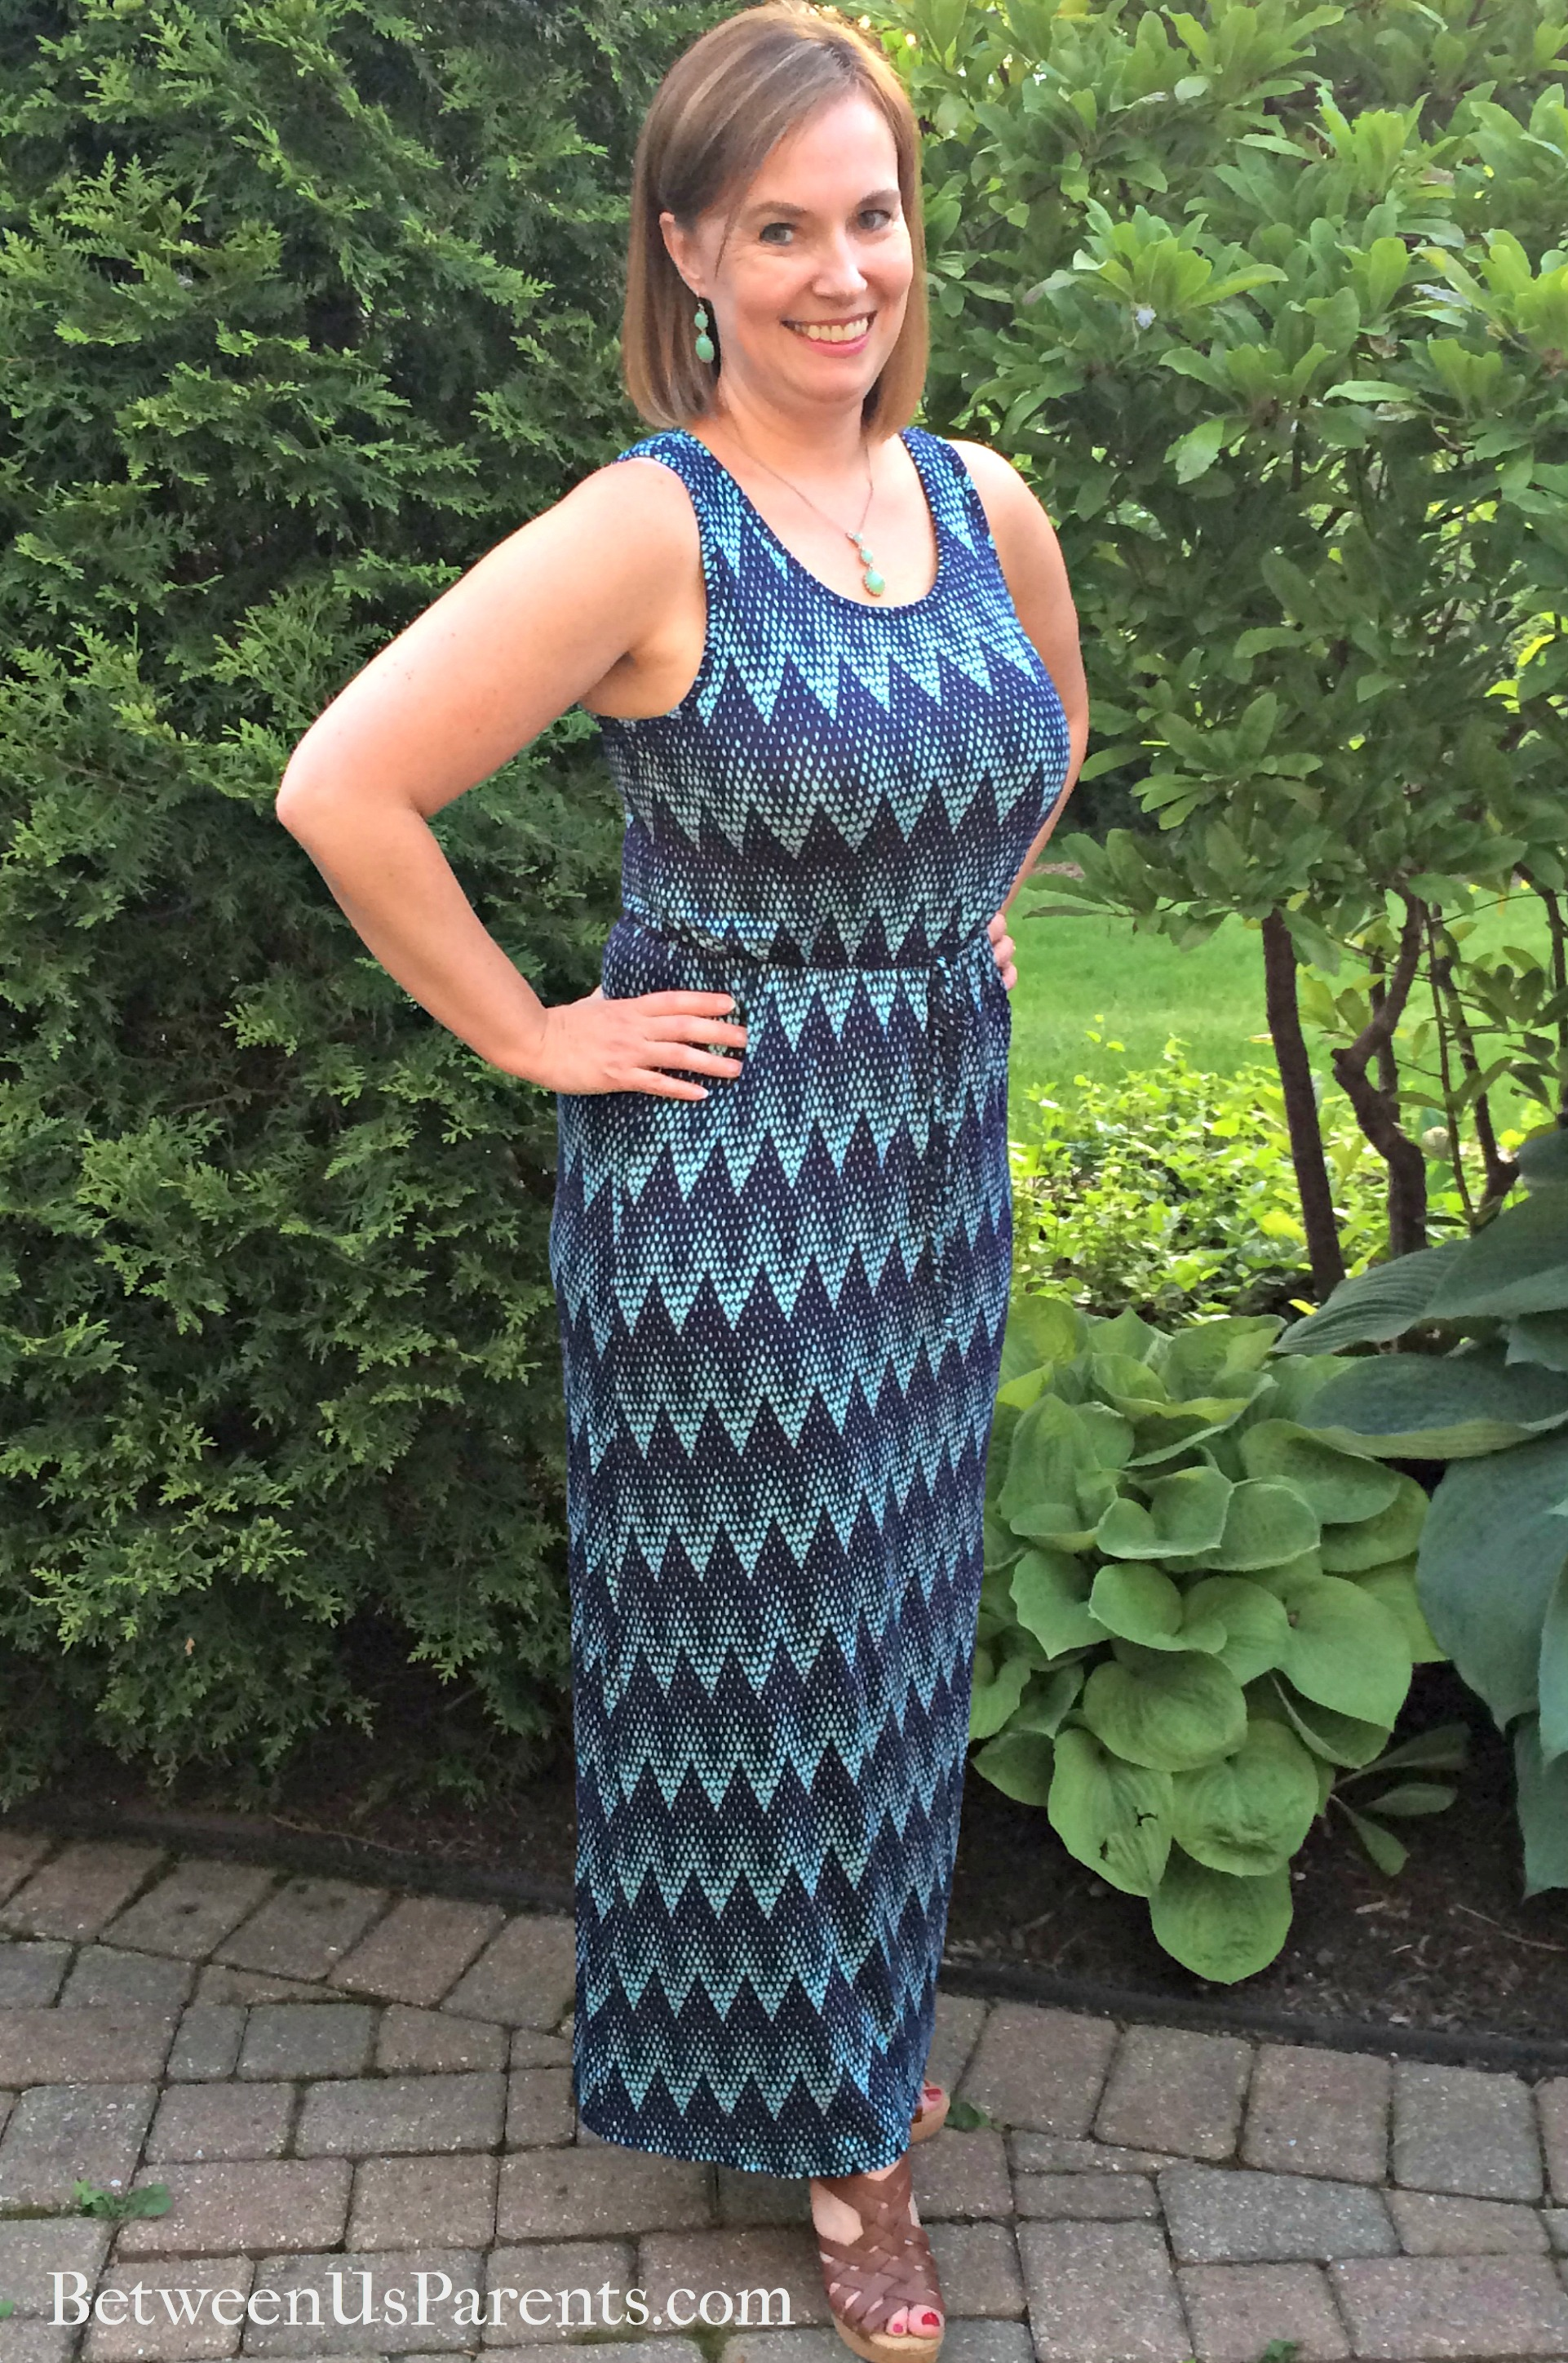 Knitting Pattern For Maxi Dress : Papermoon Waters Knit Maxi Dress - Between Us Parents